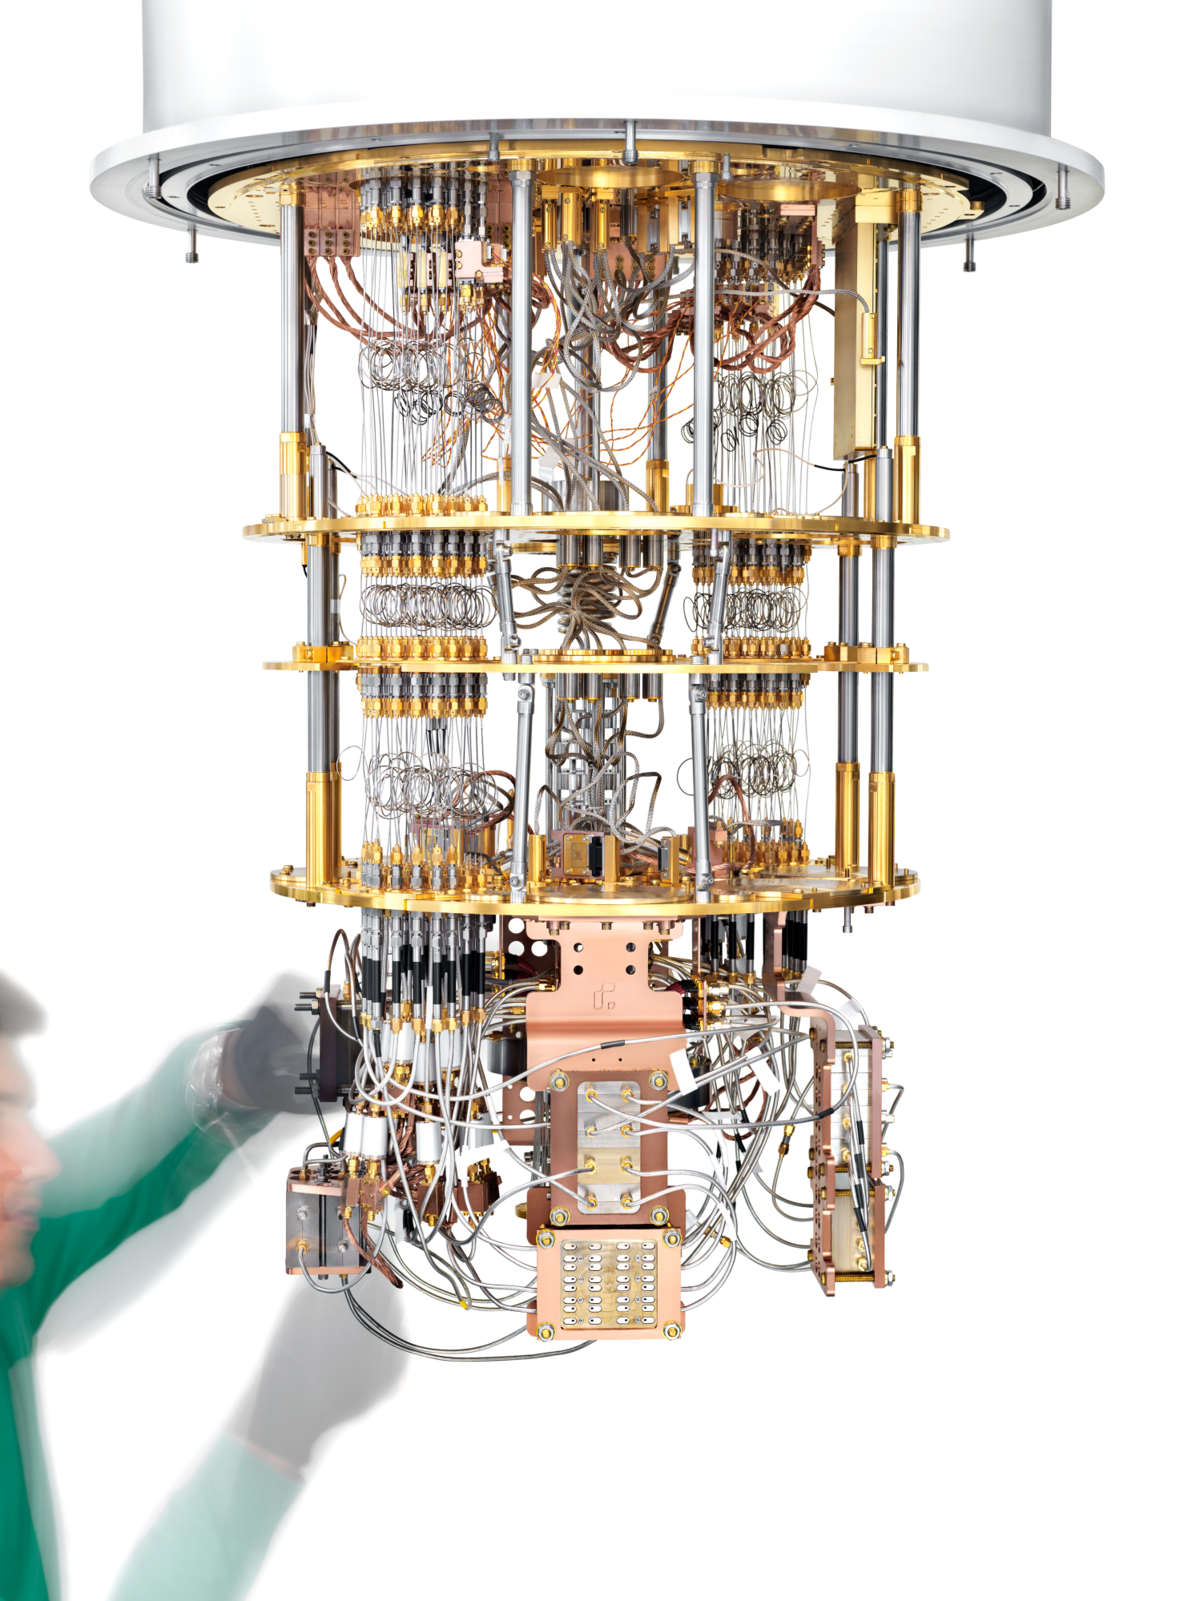 Quantum Computers Today Aren T Very Useful That Could Change